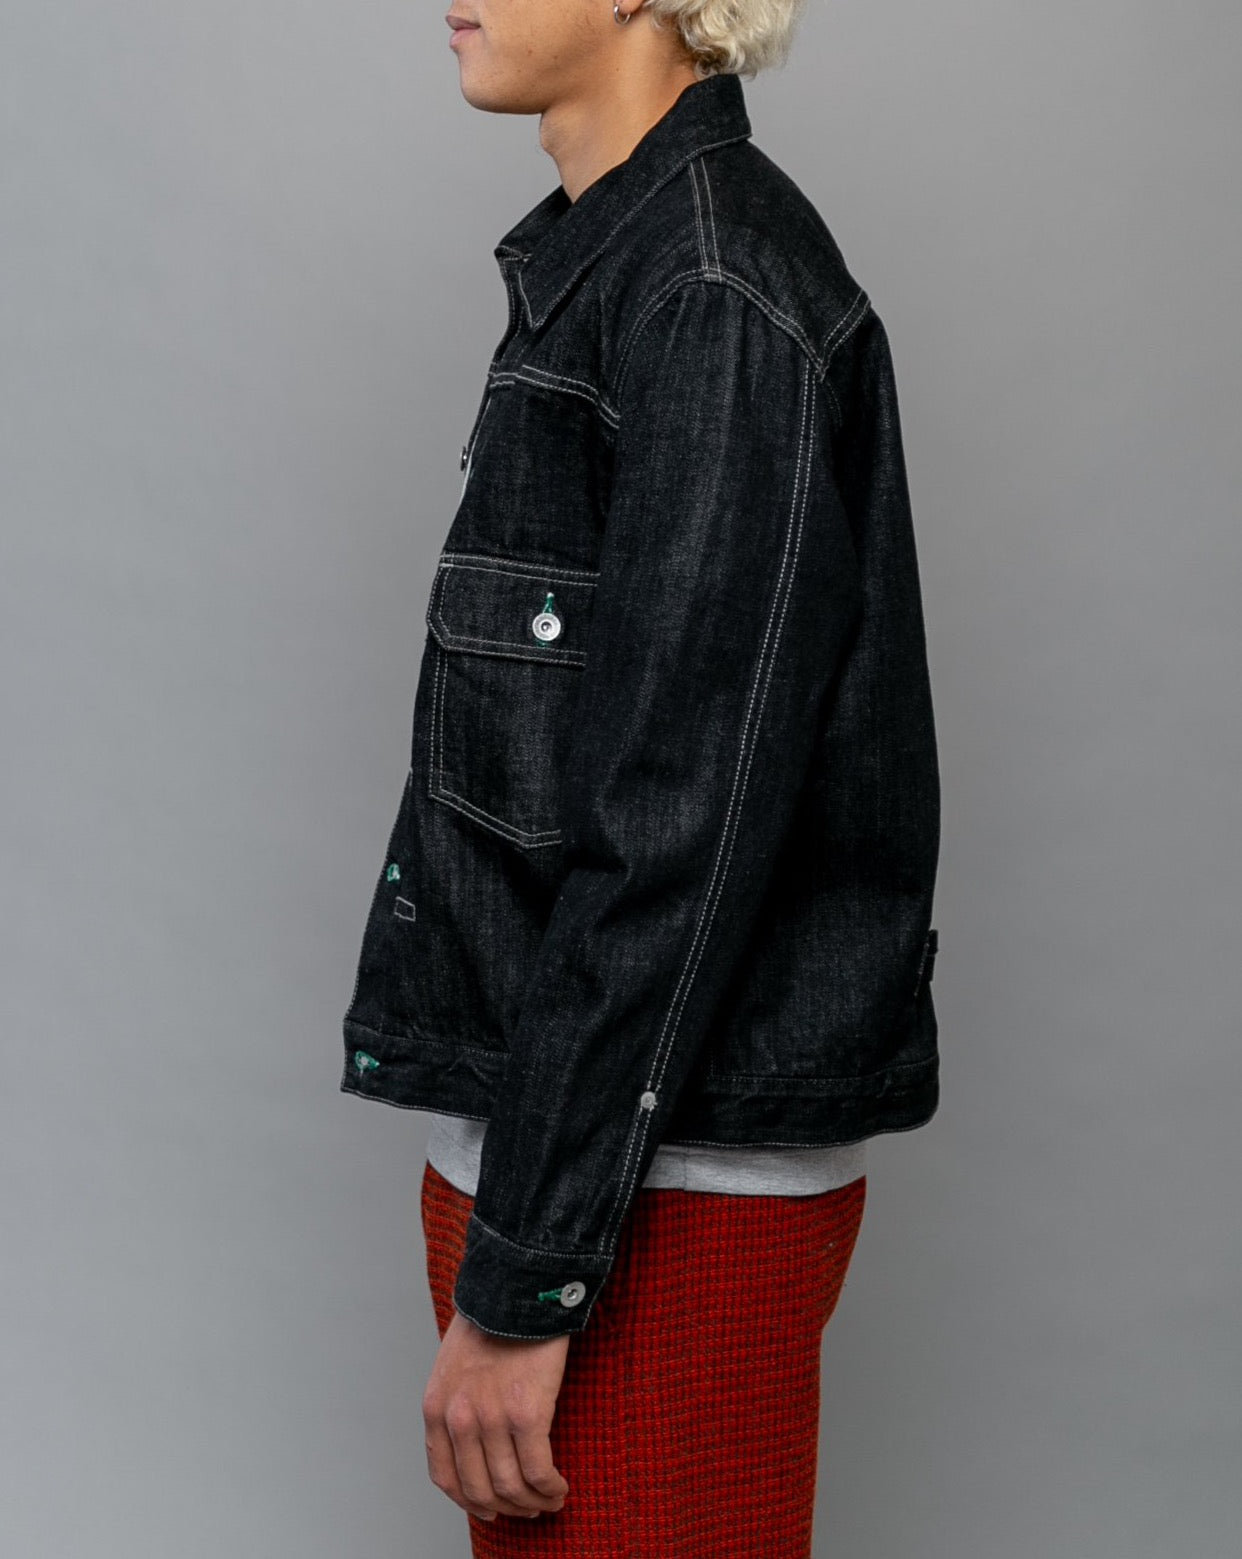 Stockman Type-A Denim Jacket Black